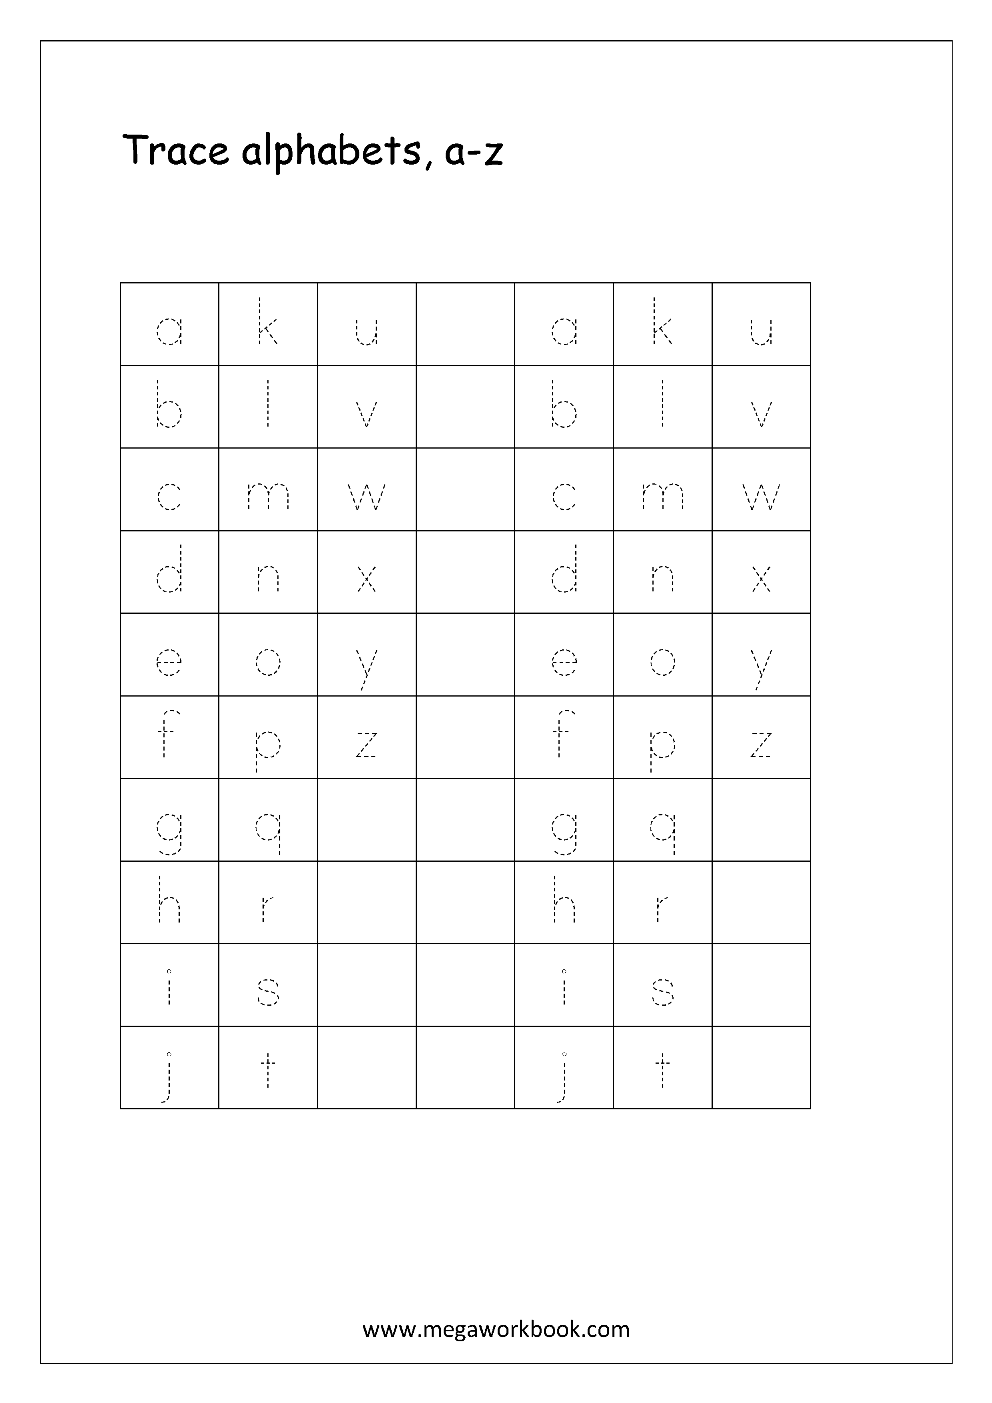 Worksheet For Small Alphabets: free english worksheets alphabet tracing small letters letter ,